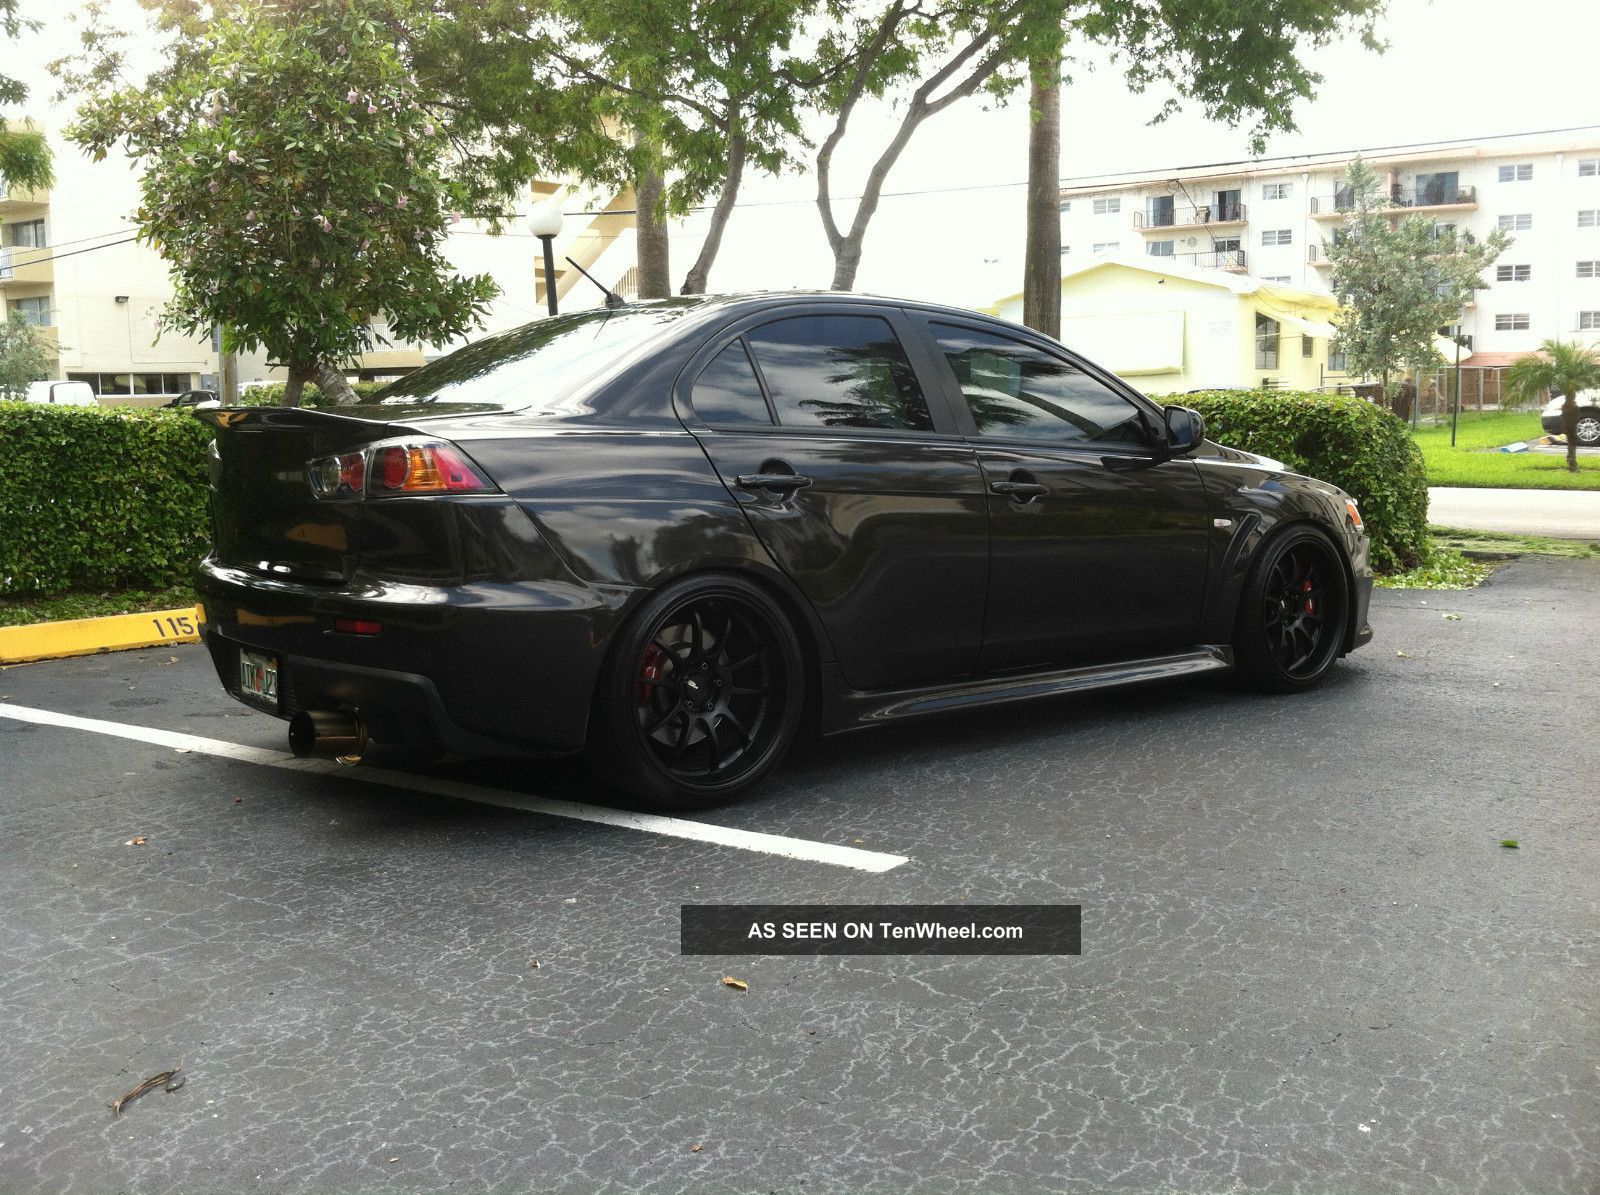 2010 mitsubishi evolution x gsr phantom black. Black Bedroom Furniture Sets. Home Design Ideas